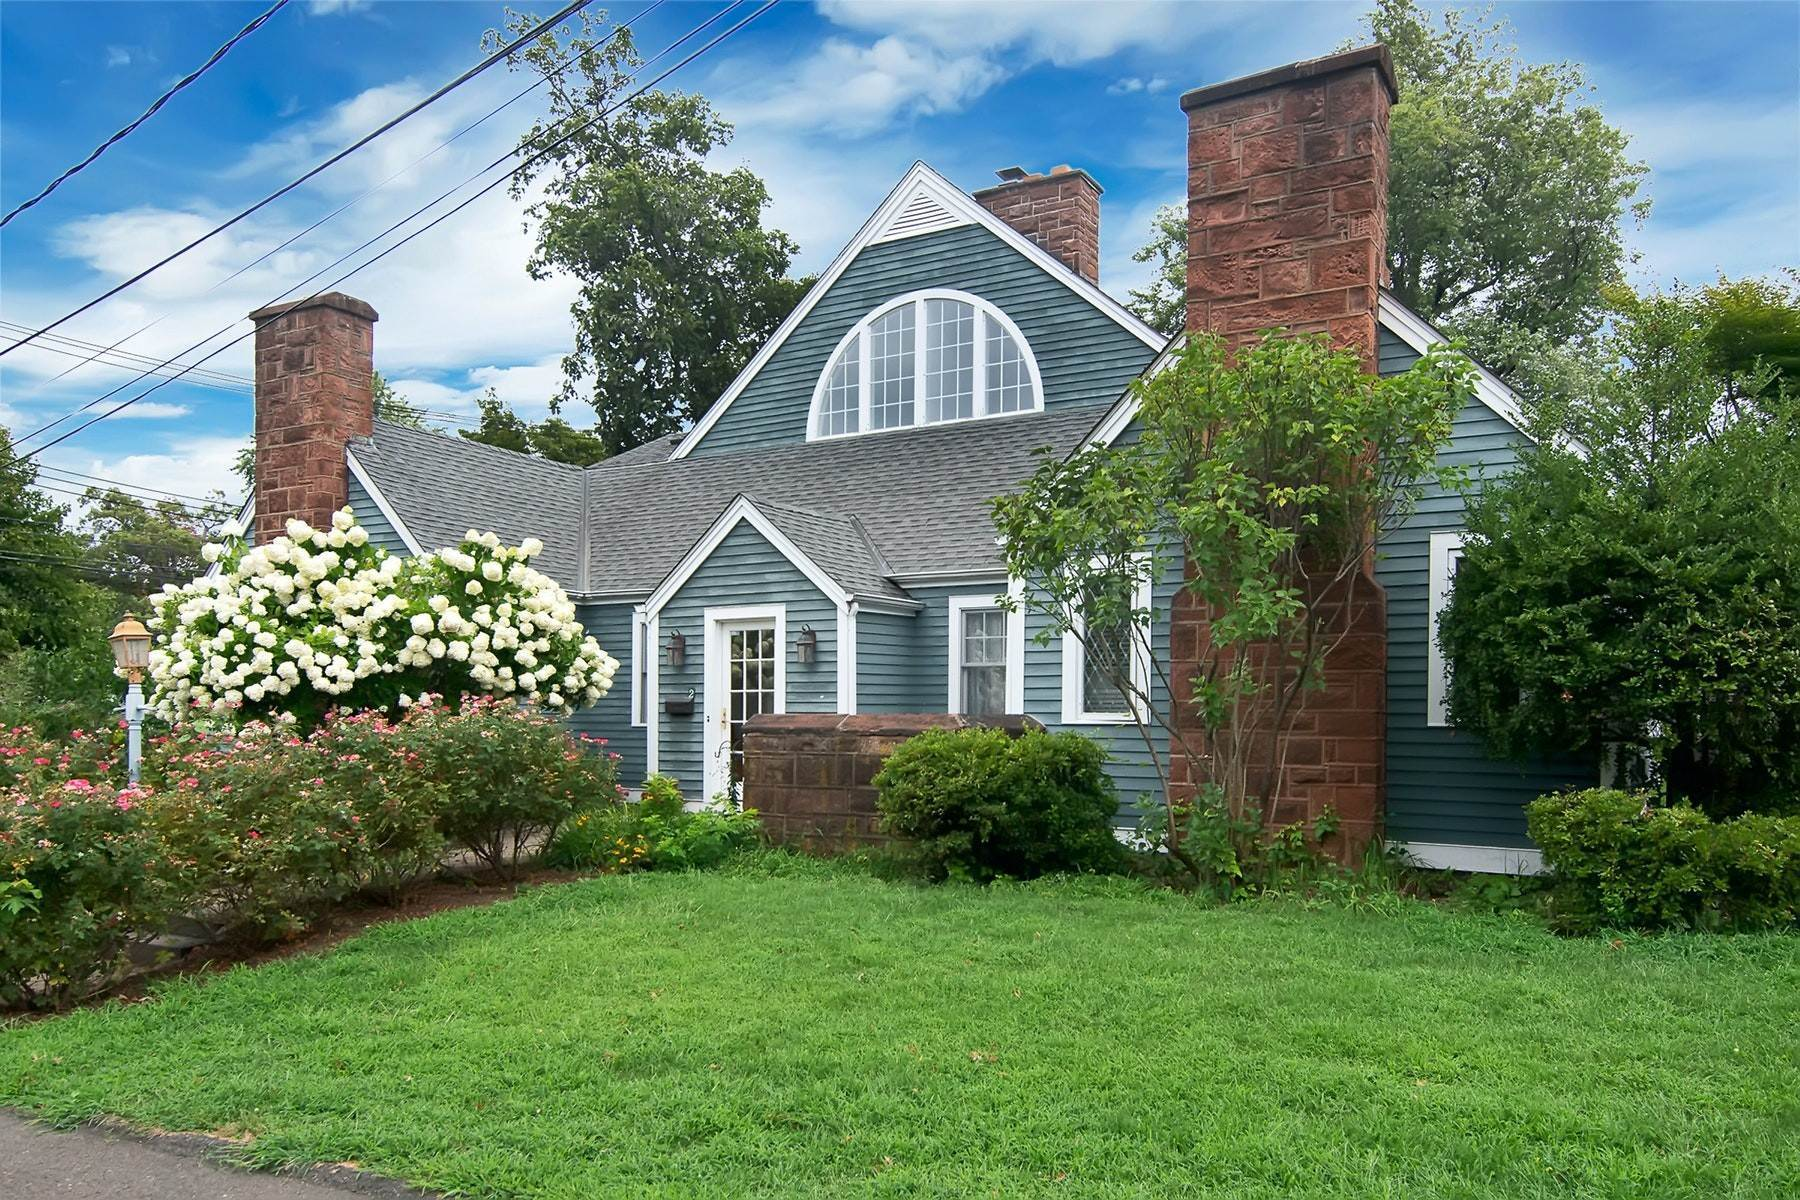 Single Family Homes for Sale at Custom Contemporary Colonial 2 Gurnee Avenue South Nyack, New York 10960 United States